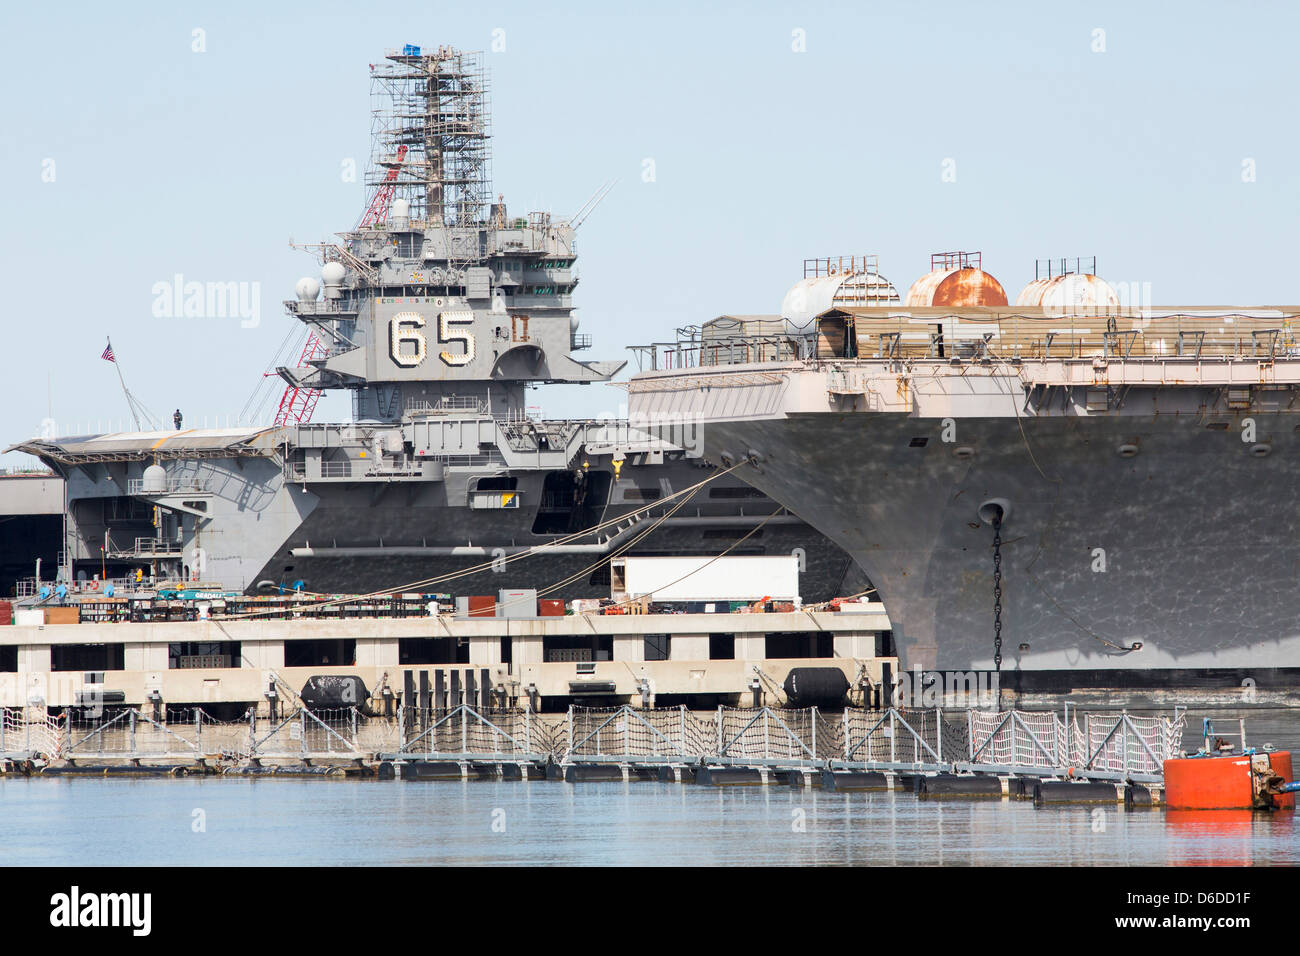 The aircraft carriers USS Abraham Lincoln (CVN-72) and USS Enterprise (CVN-65) at Naval Station Norfolk. - Stock Image